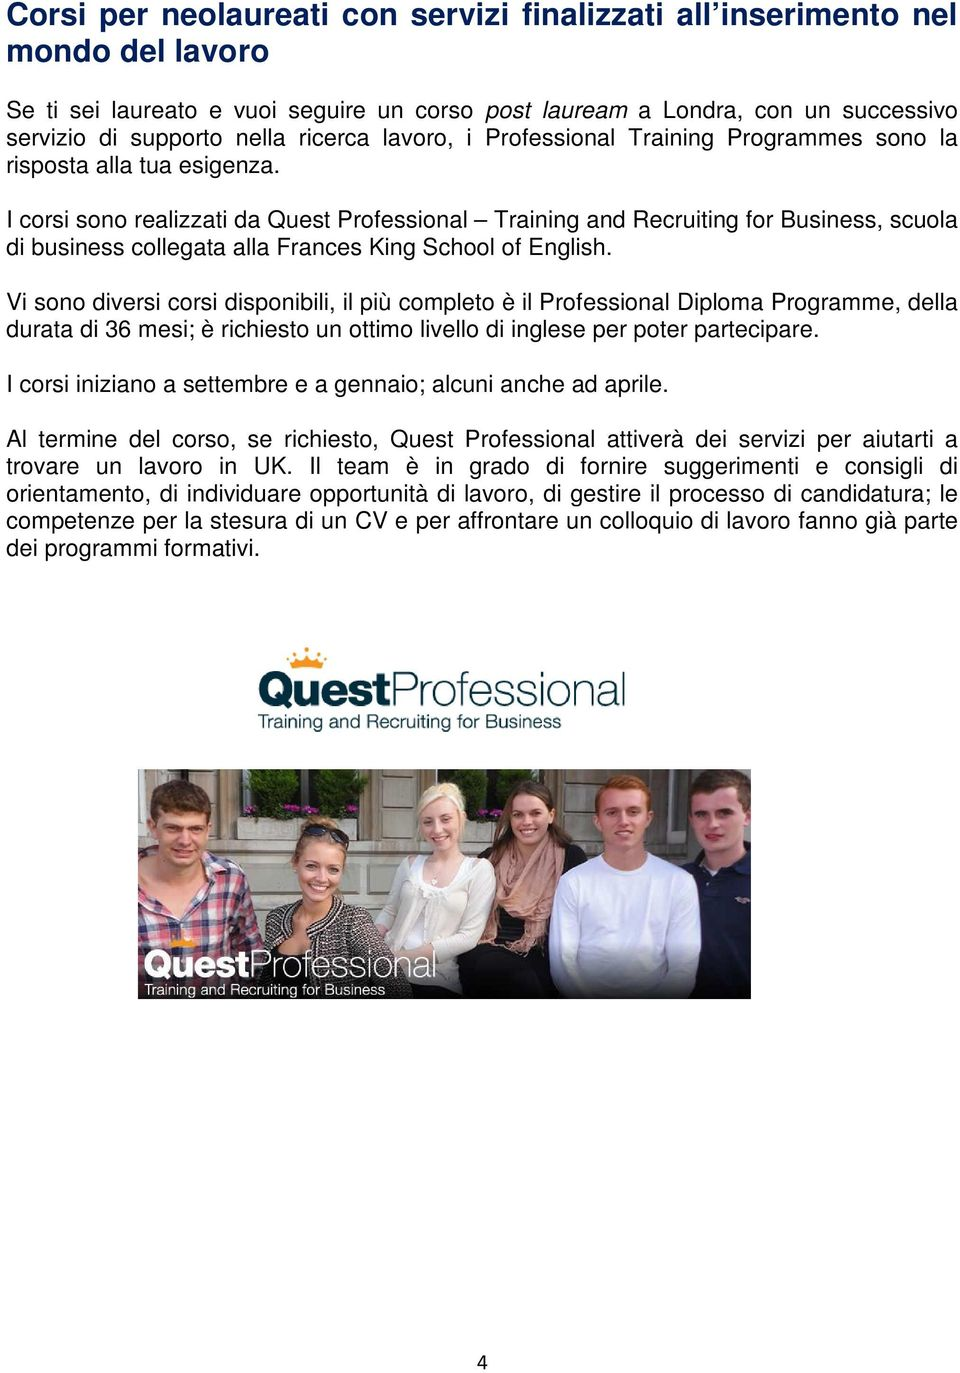 I corsi sono realizzati da Quest Professional Training and Recruiting for Business, scuola di business collegata alla Frances King School of English.